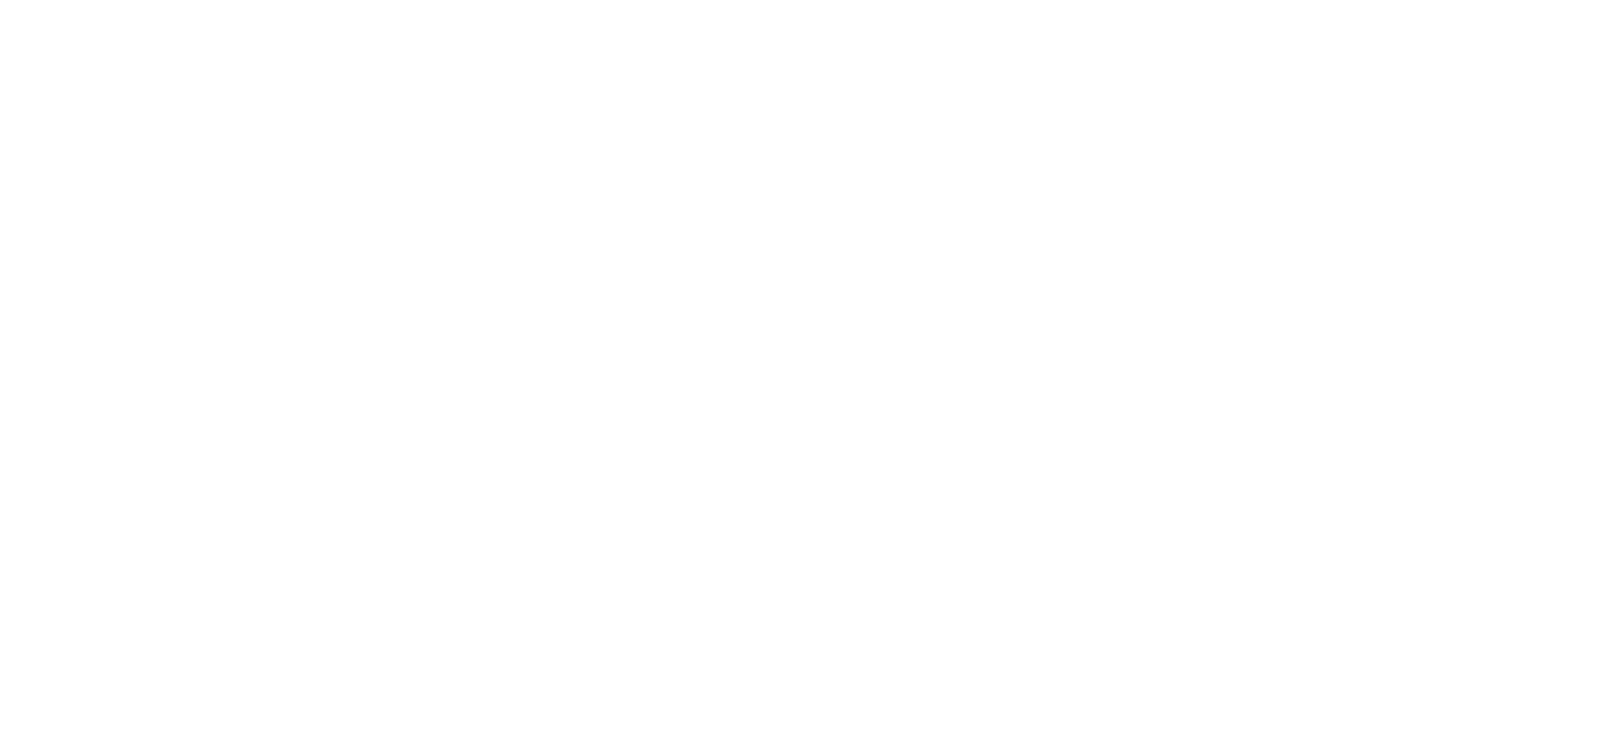 AC_FUND_Festivals_WHT